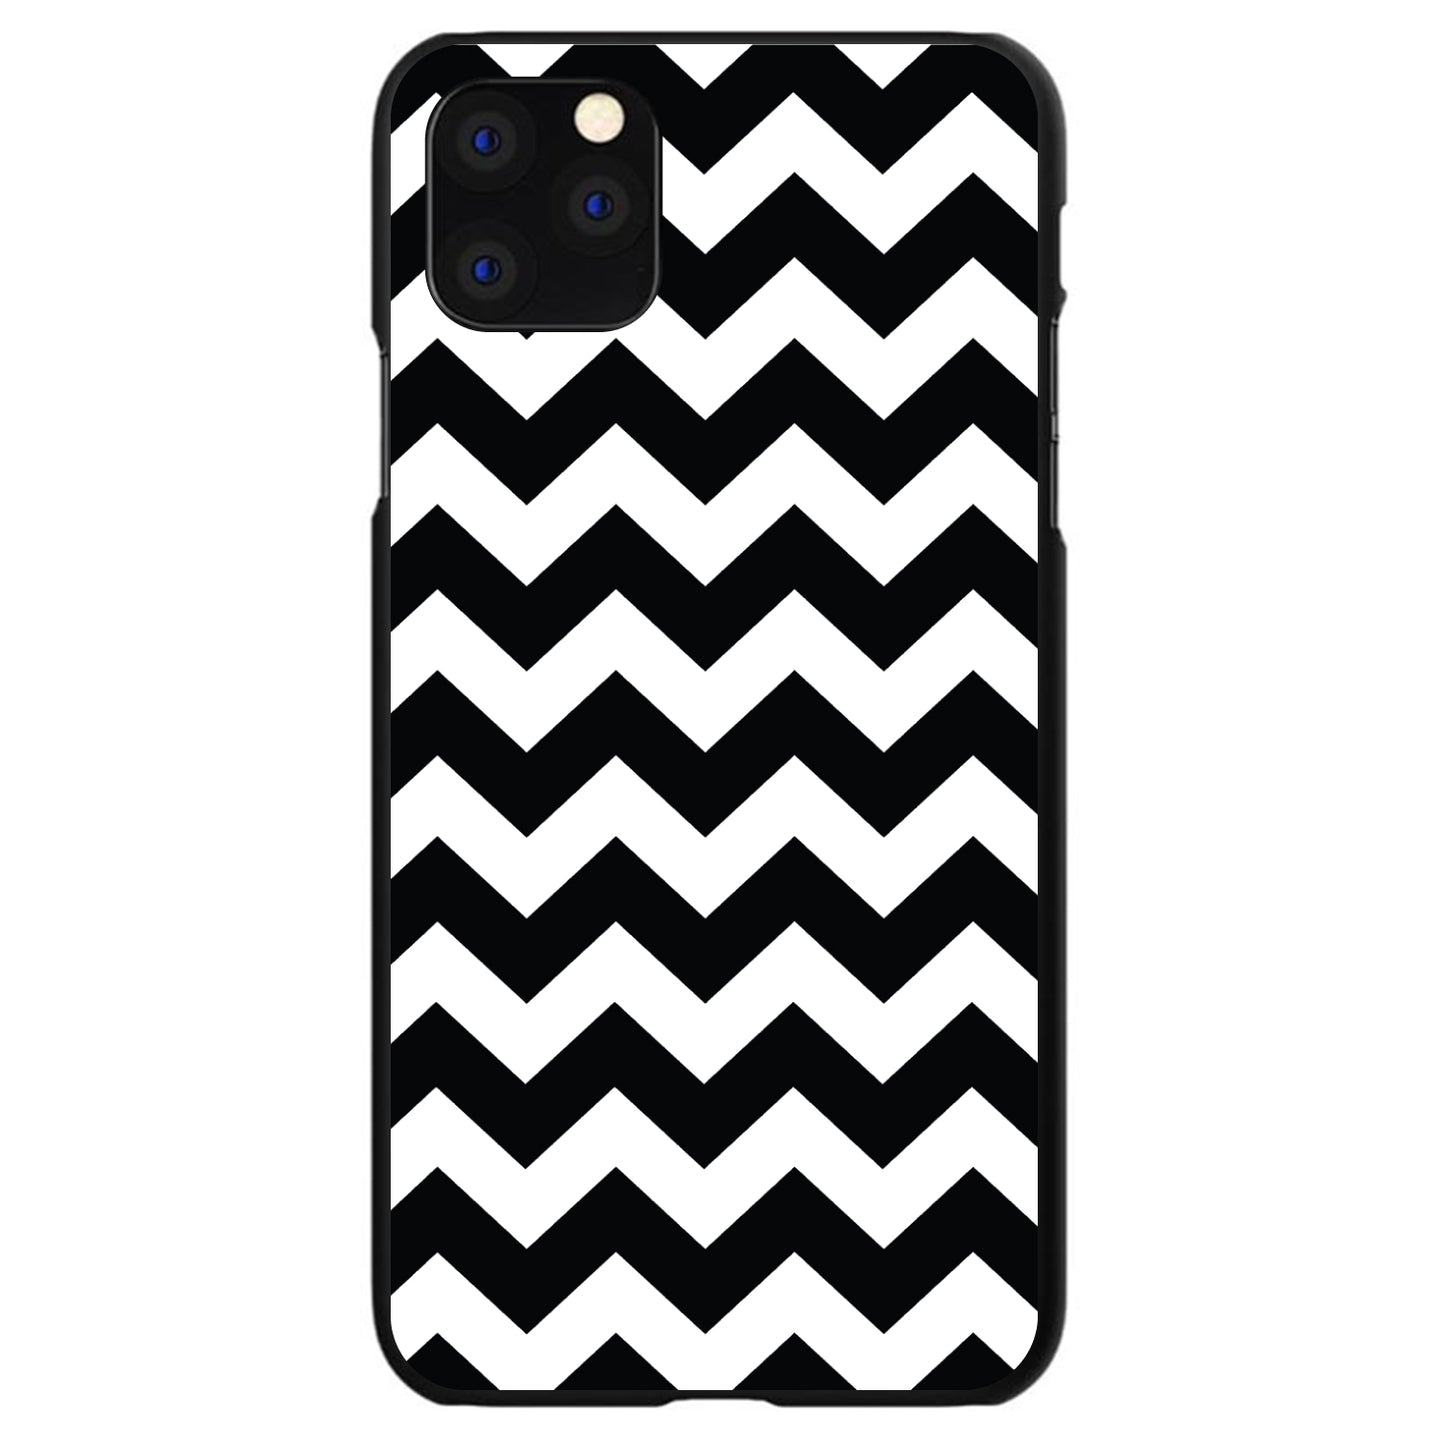 DistinctInk® Hard Plastic Snap-On Case for Apple iPhone - Black & White Chevron Stripes